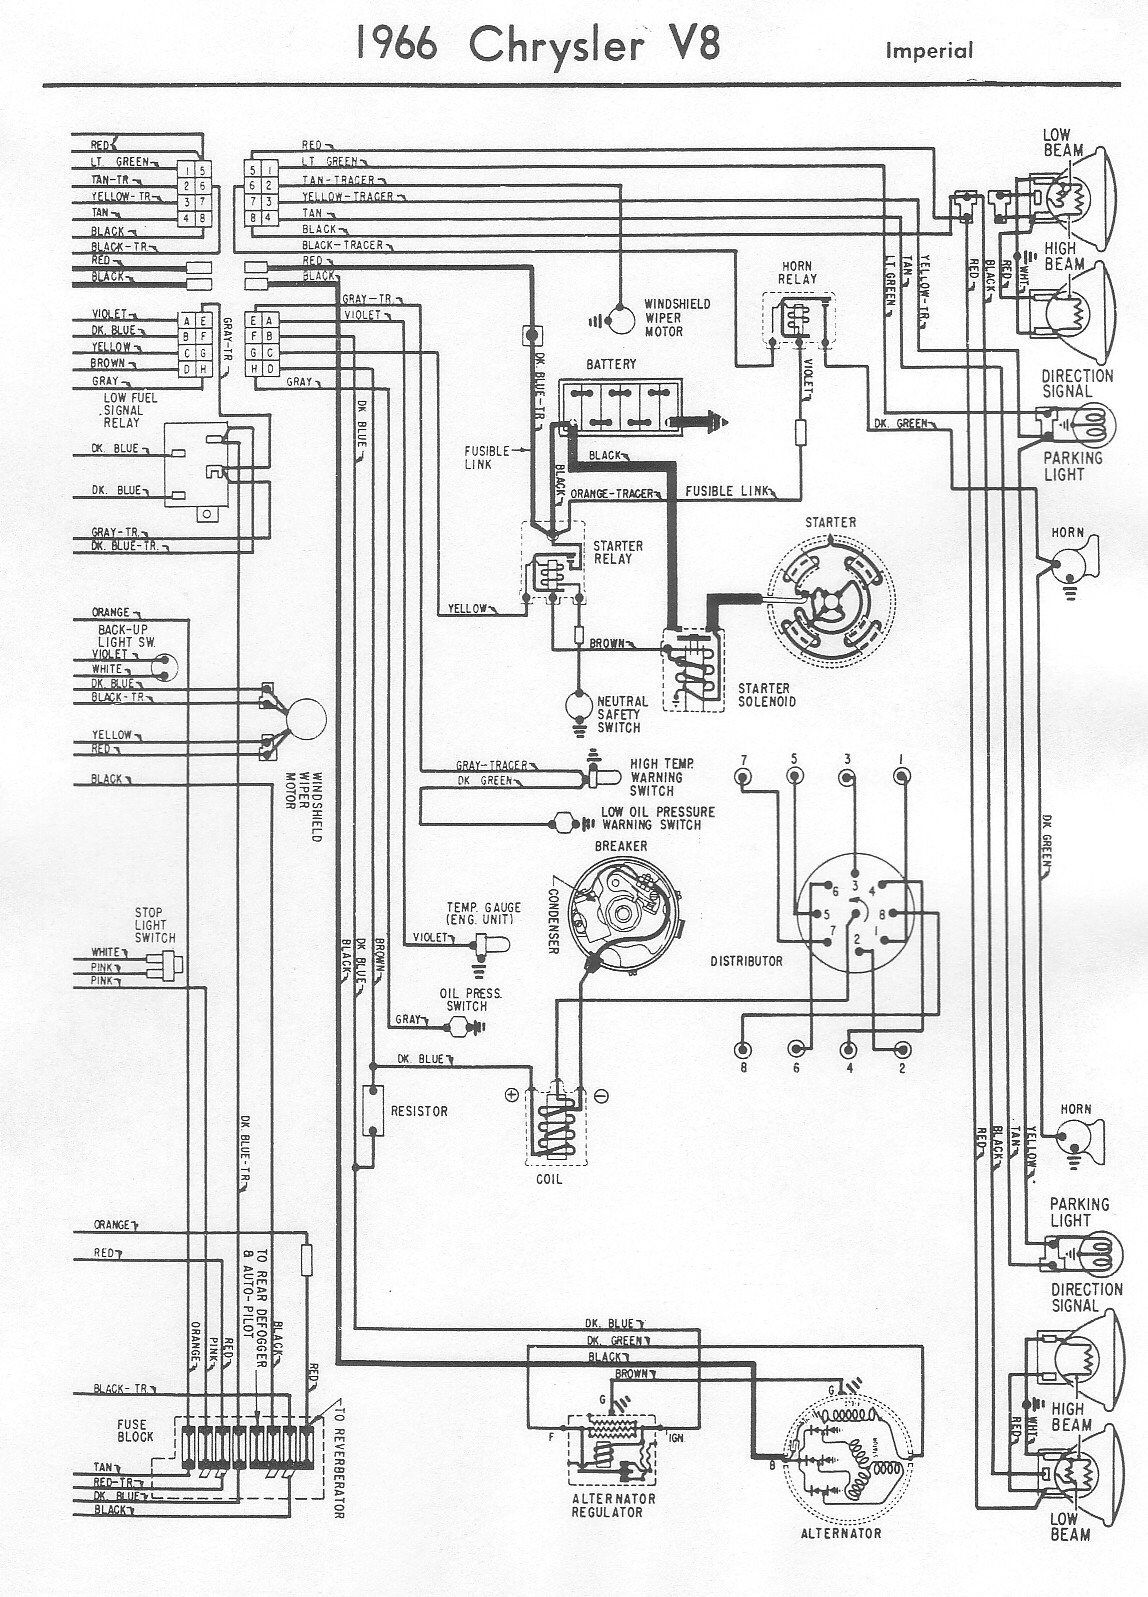 Acura Slx Engine Wire Diagram About Wiring Toyota Estima Free 85 Camaro Dash Schematic Auto Electrical Pickup